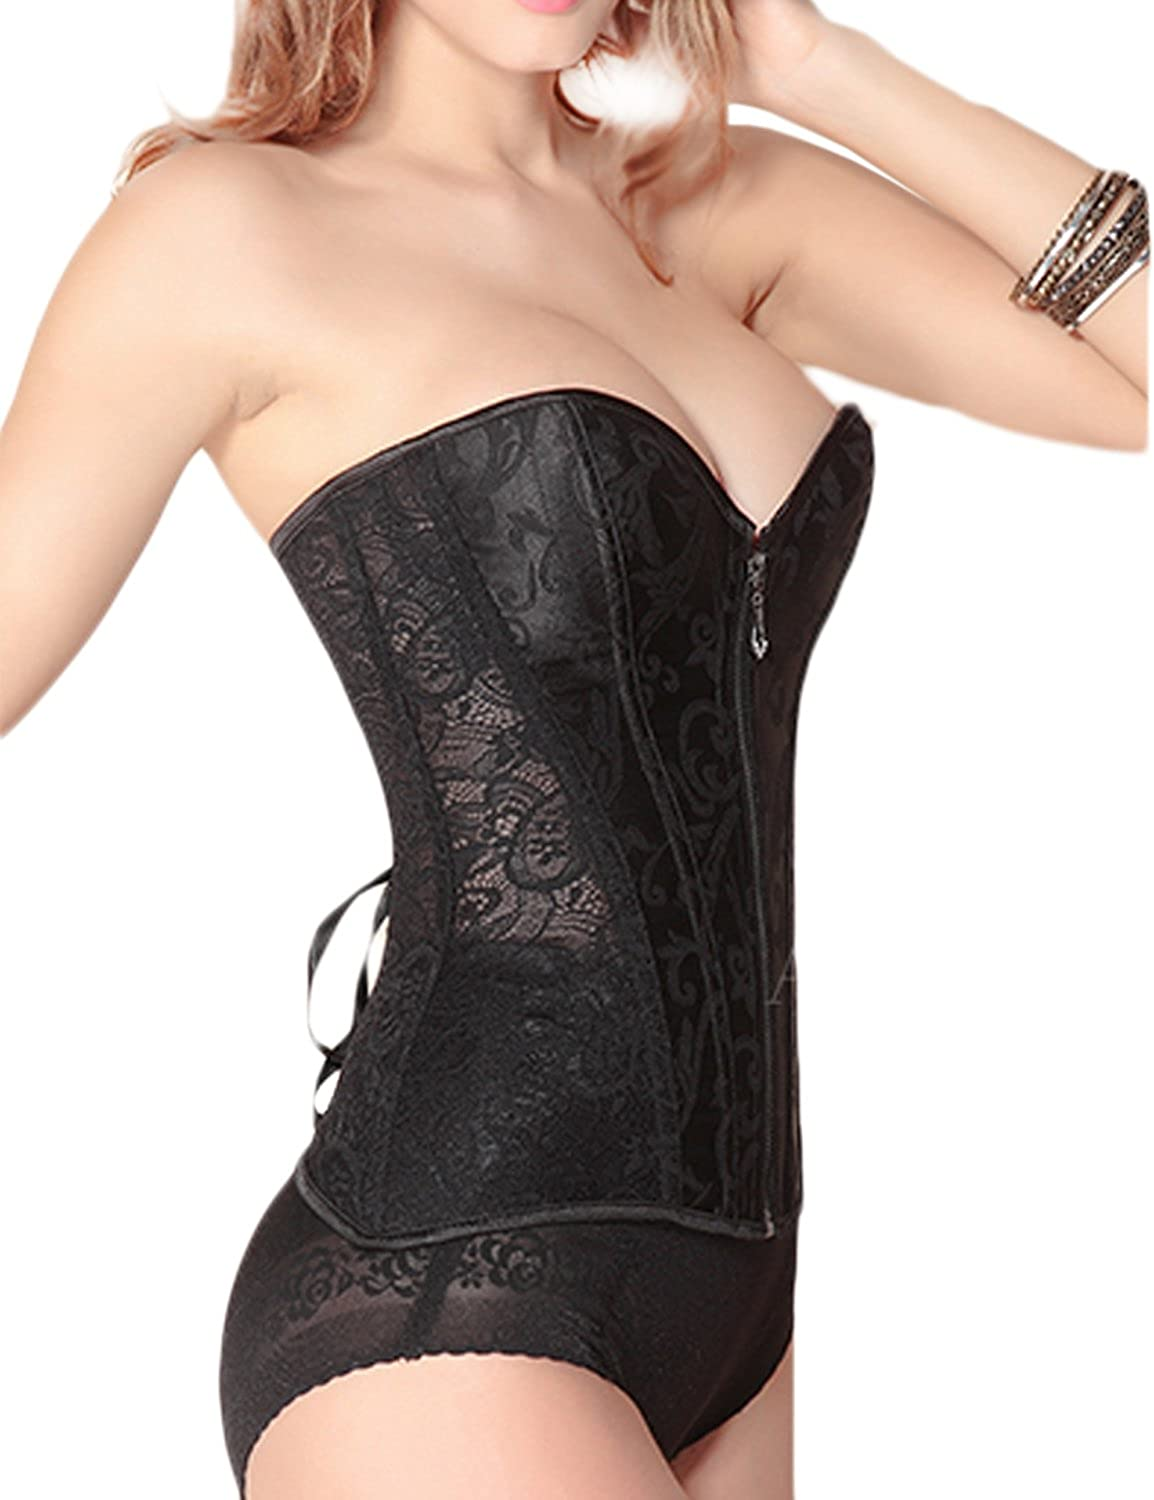 07ef3a9e4c Only Faith Women s Wedding Waist Slimming Trainer Corset Cincher Body Shaper  at Amazon Women s Clothing store